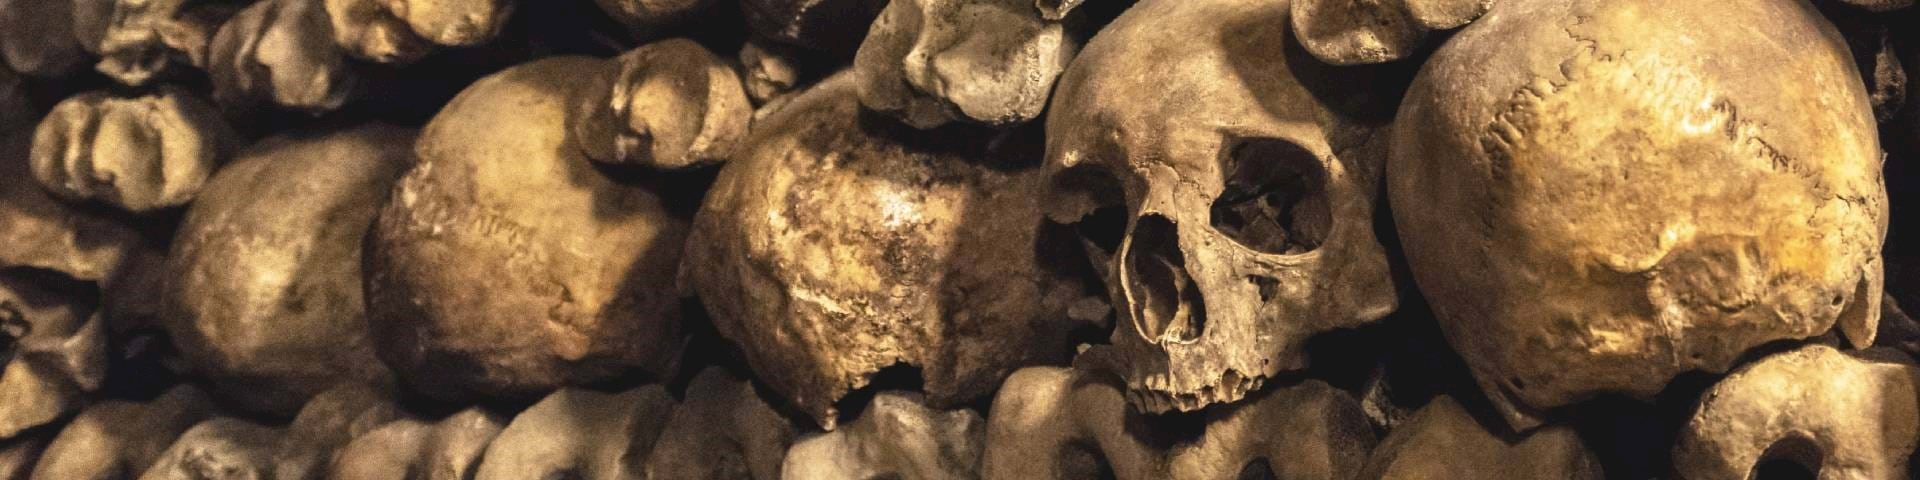 Rome Catacombs Tours